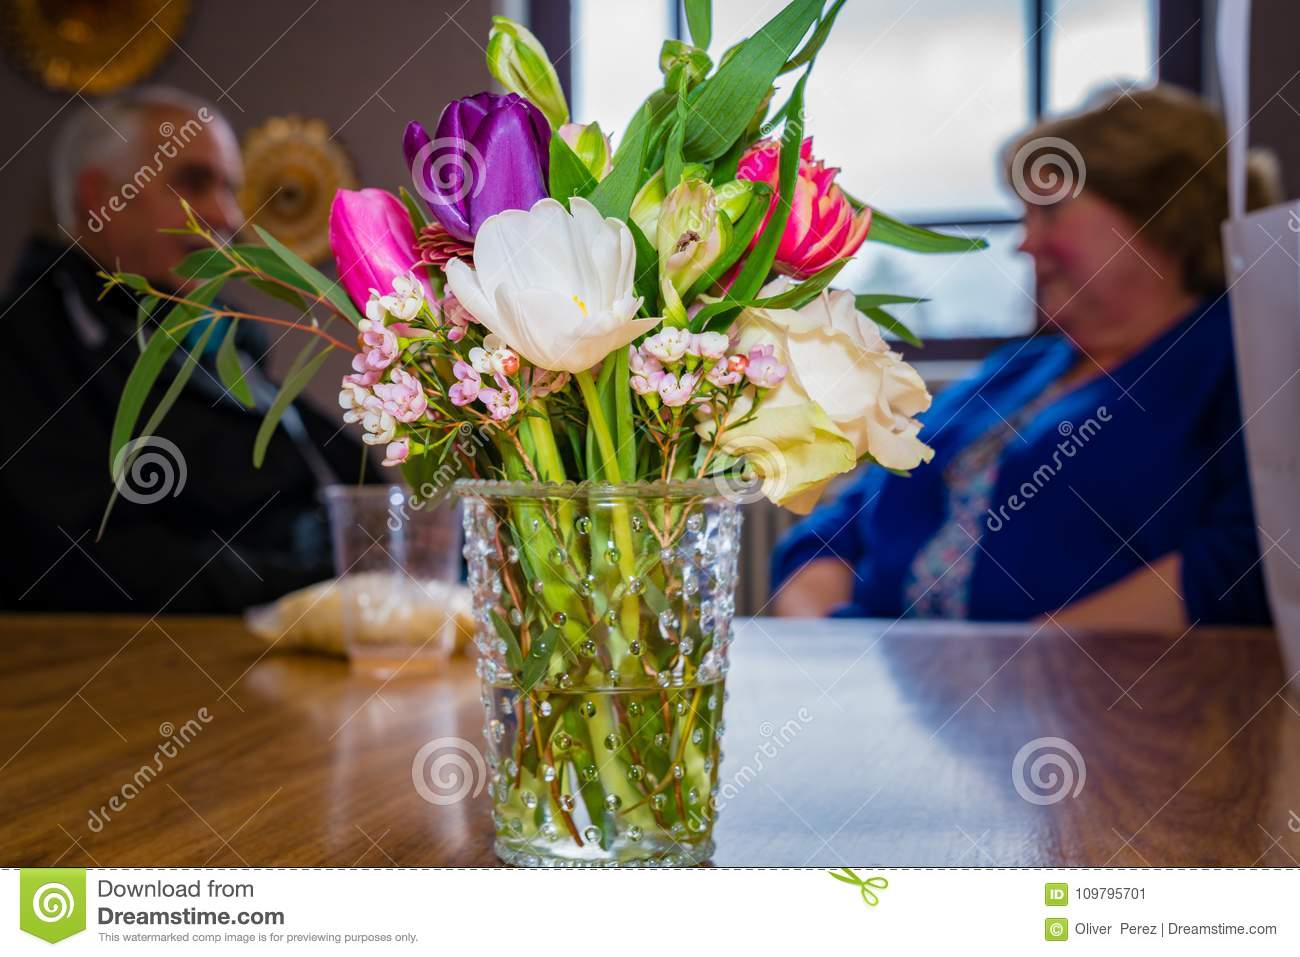 https www dreamstime com colorful assorted flower arrangement used as center piece table beautiful flower arrangement glass vase image109795701